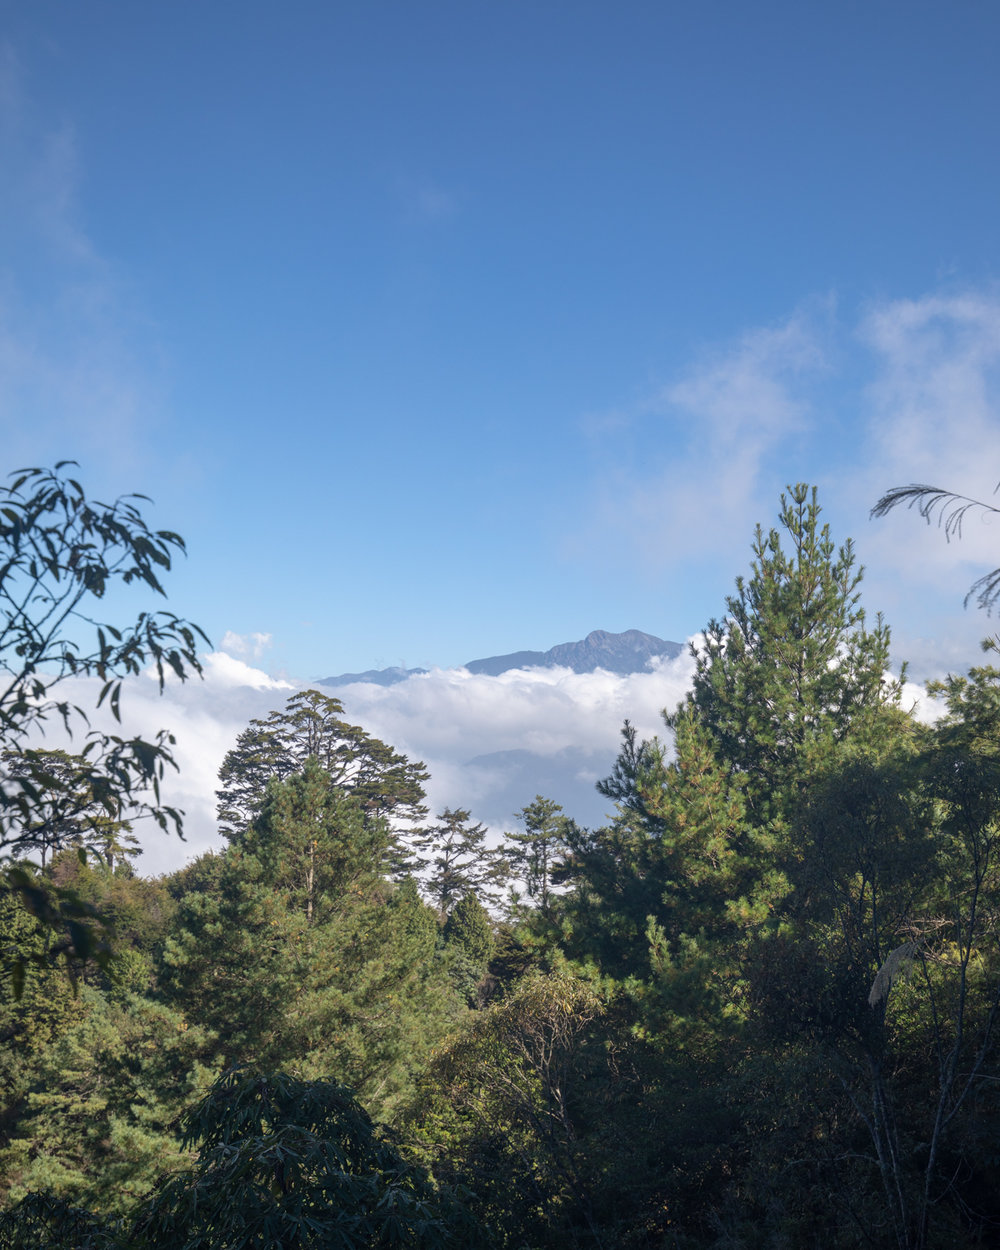 The views from the Tashan Trail in Alishan